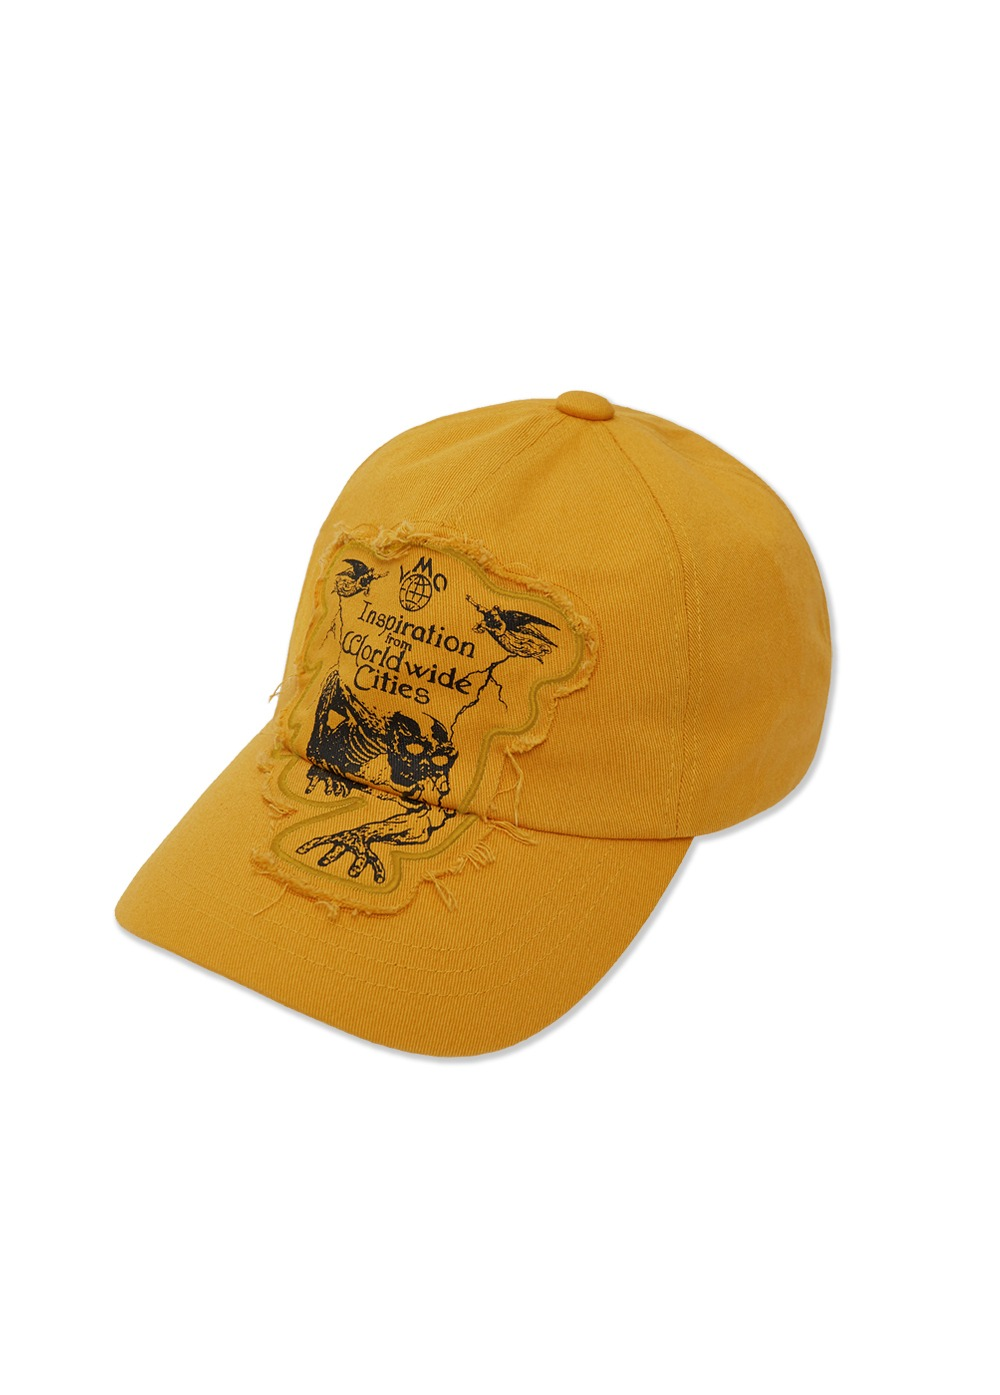 LMC RAW EDGE DEATH 5 PANEL CAP yellow